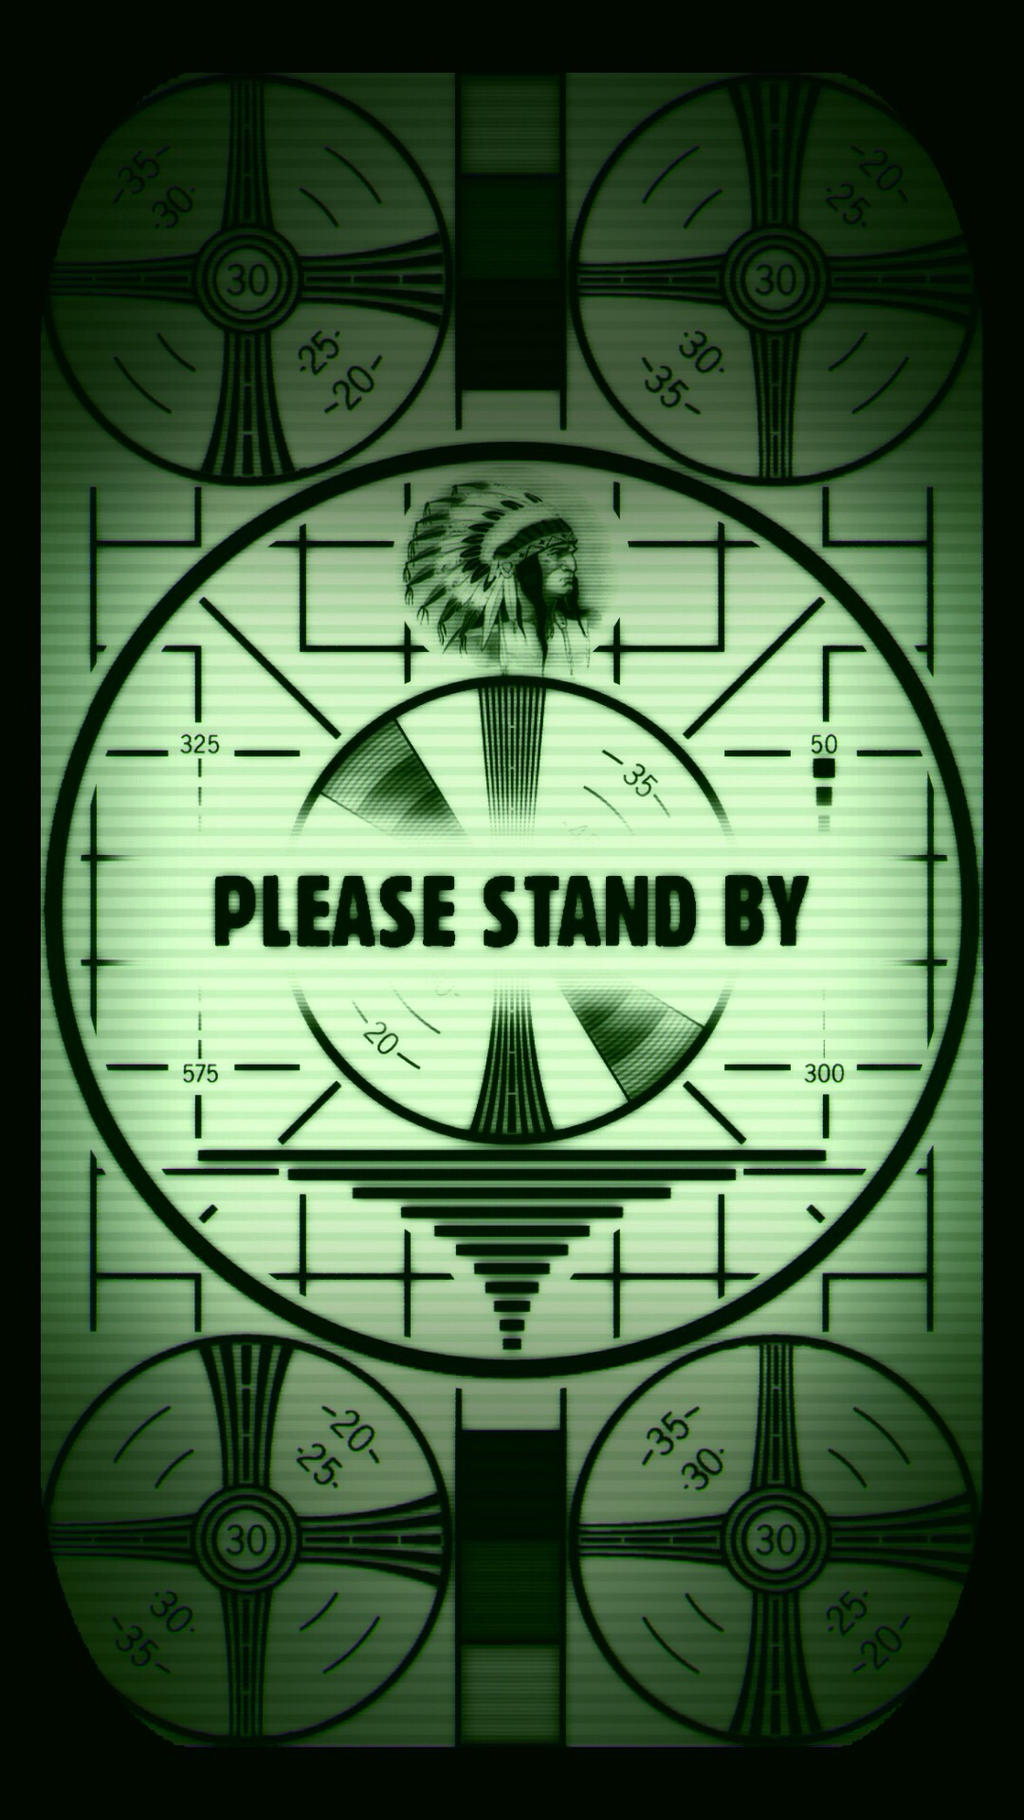 Fallout Please Stand By IPhone 5 6 Lock Screen Smills8